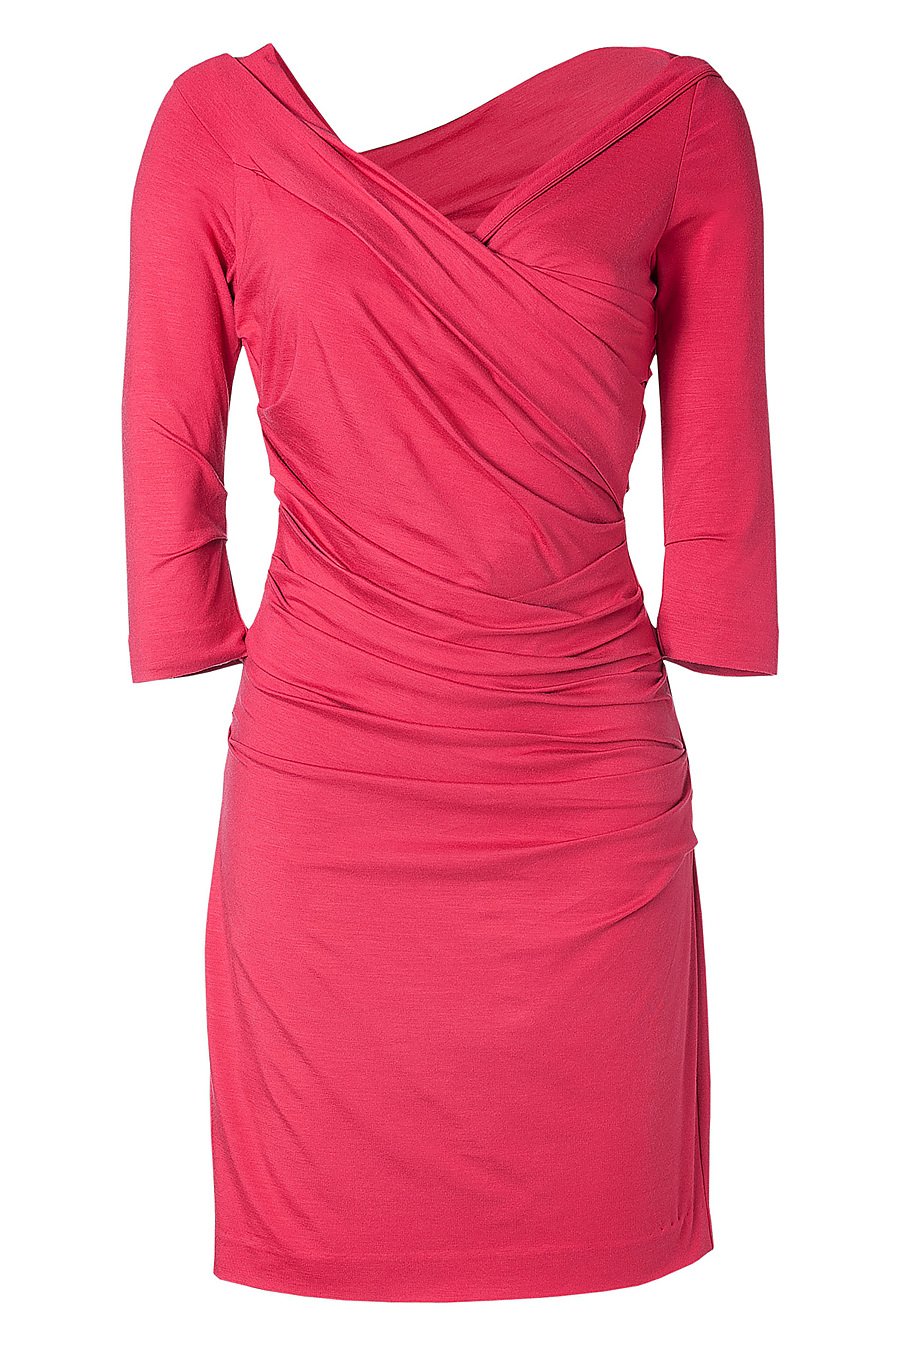 Diane von Furstenberg Bentley Short Dress in Fuschia Rose